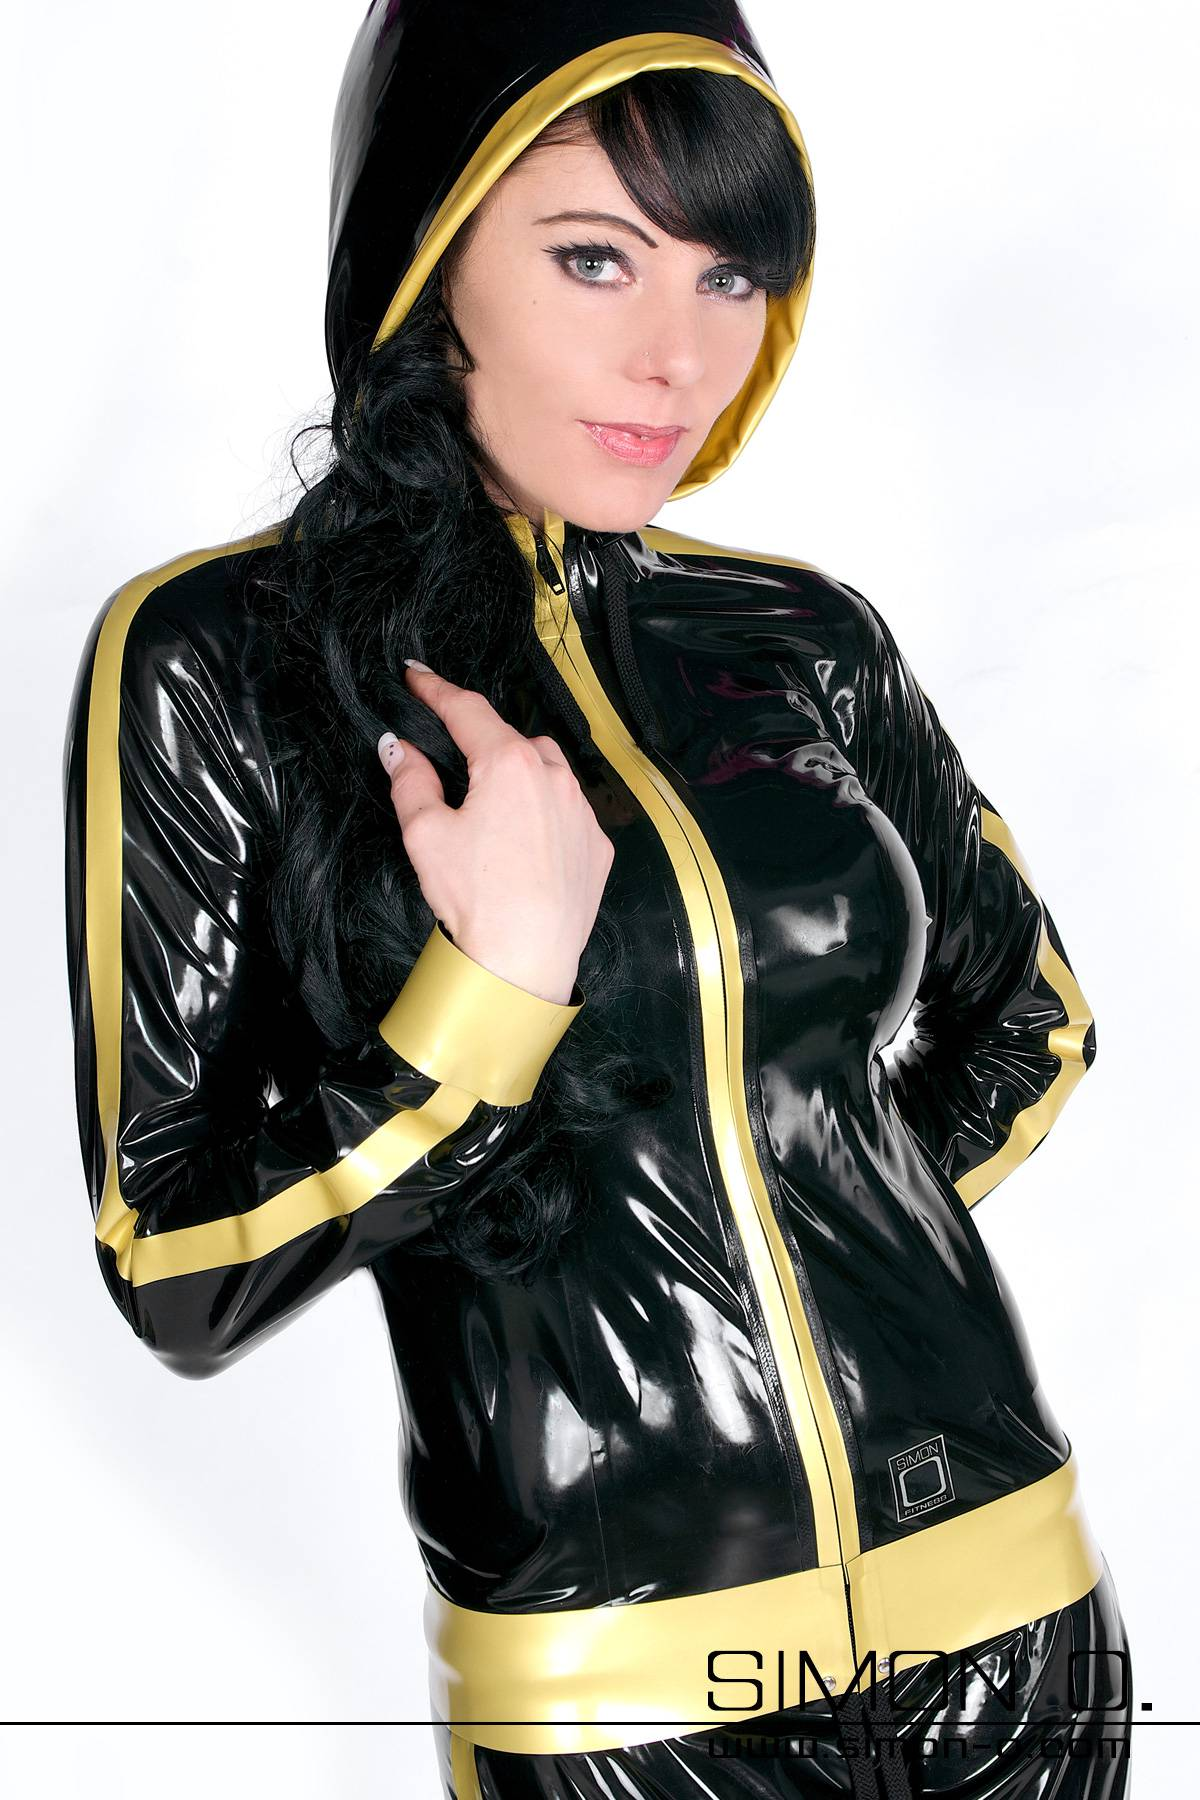 Shiny Latex Jacket in Black with Gold for Leisure and Fintness